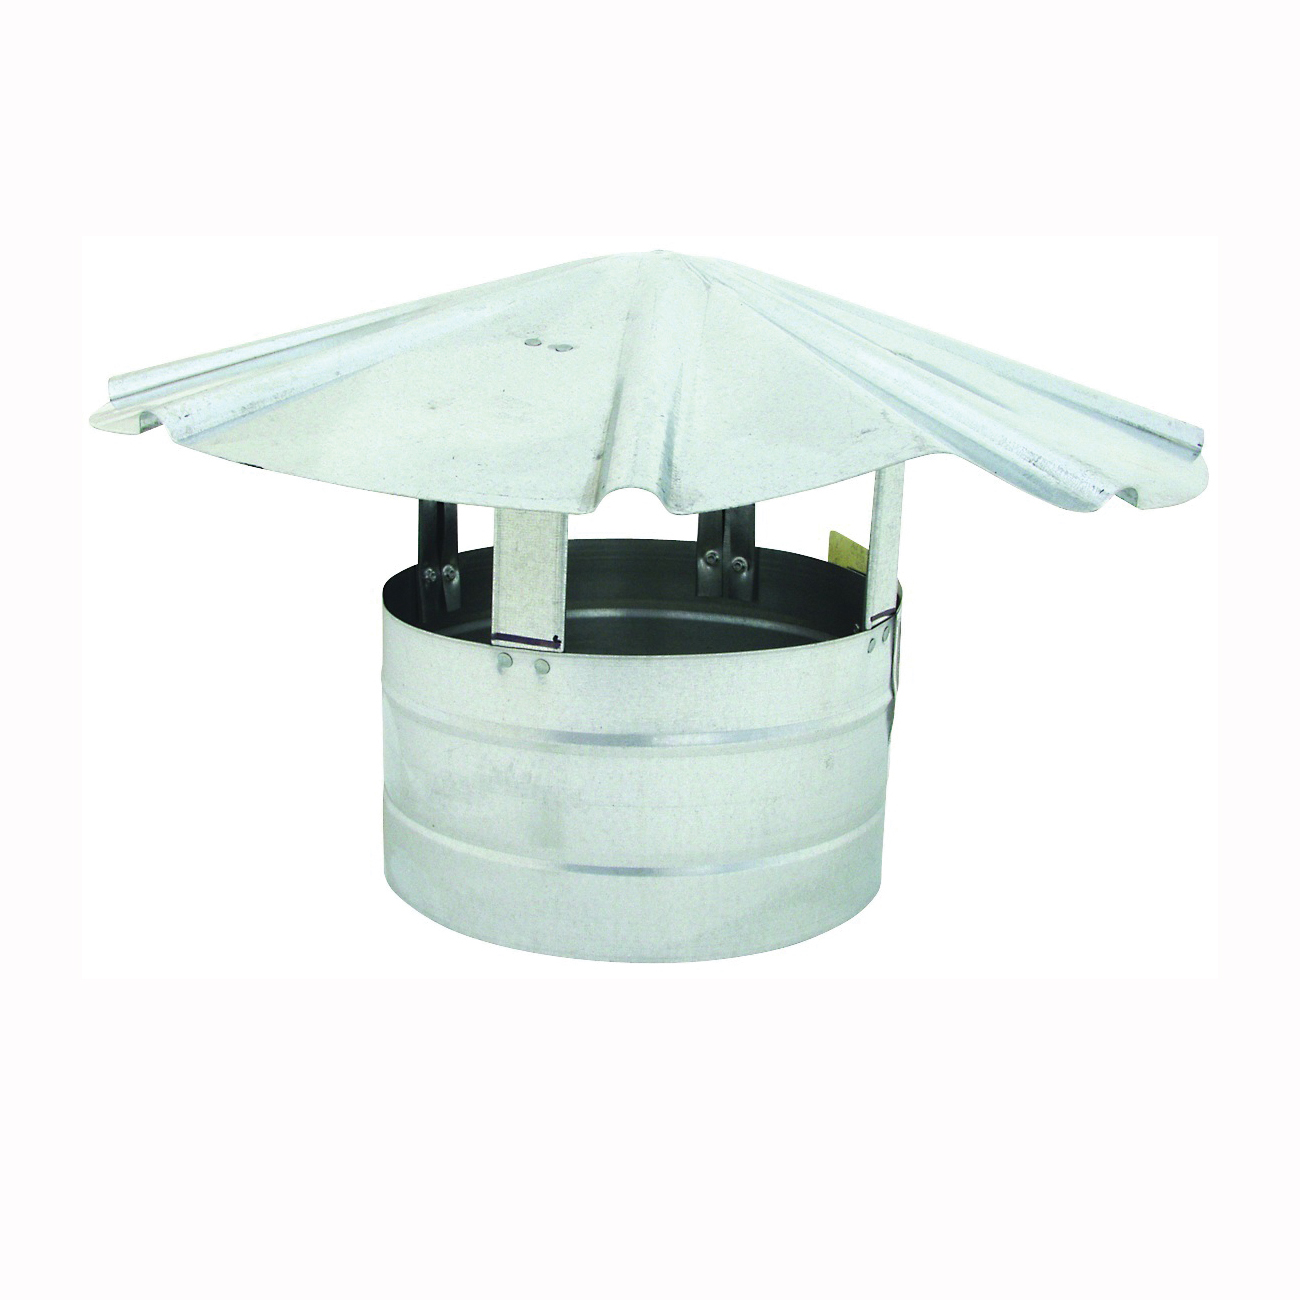 Picture of BILLY PENN 8105 Chimney Hood, 8 in Dia, Galvanized Steel